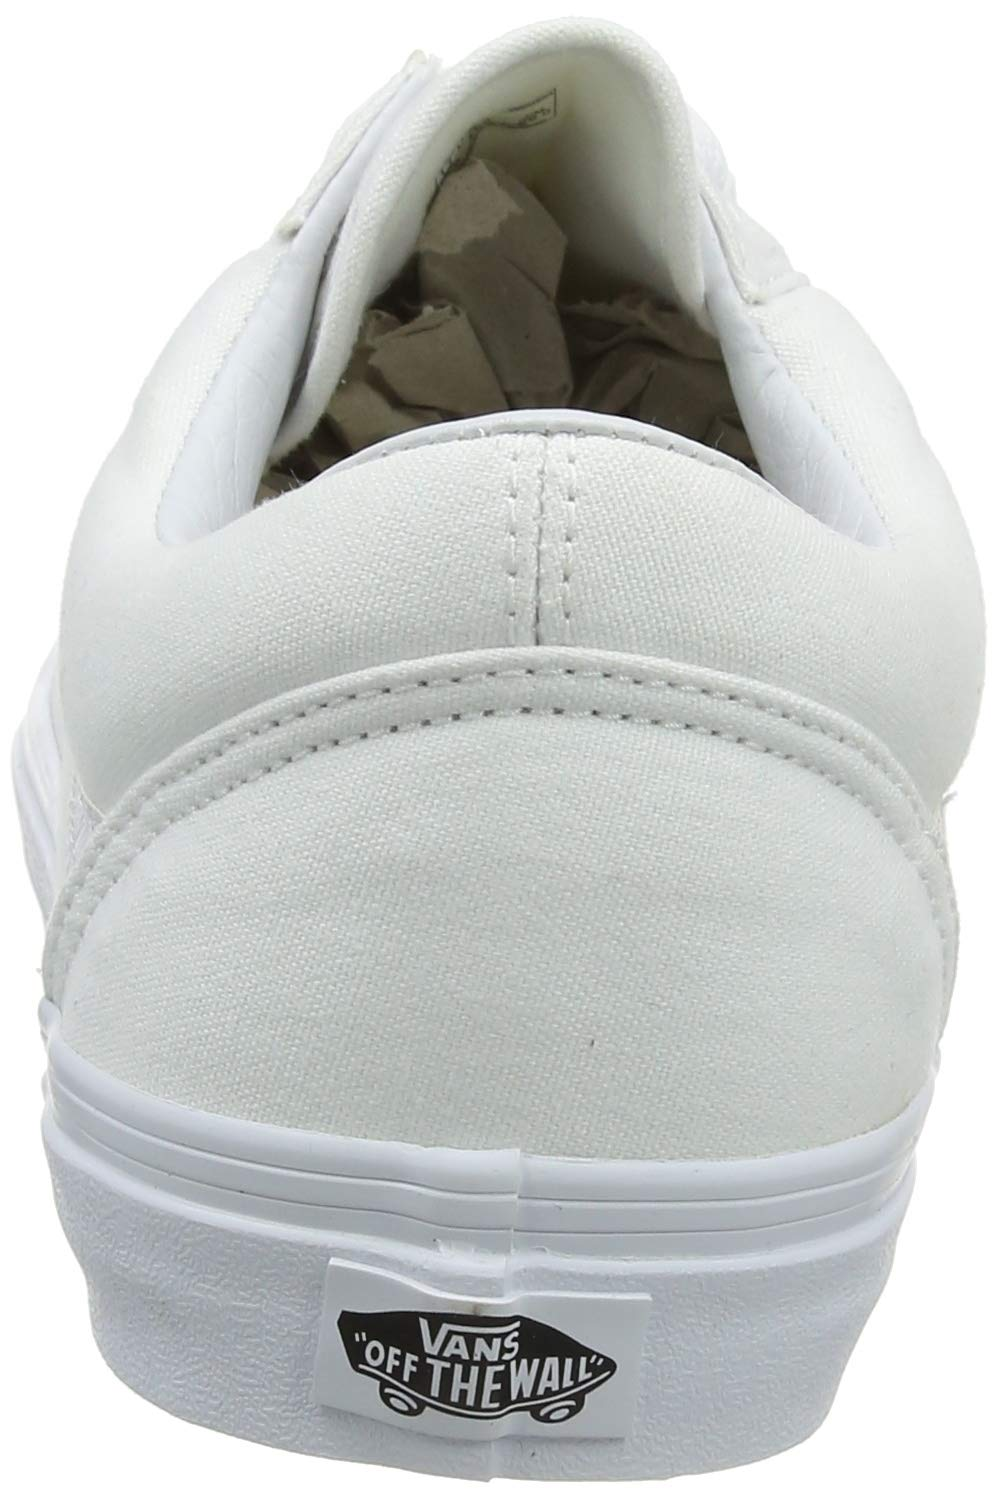 848b061c85 Galleon - Vans Off The Wall Old Skool Sneakers (True White) Classic Unisex Skate  Shoes